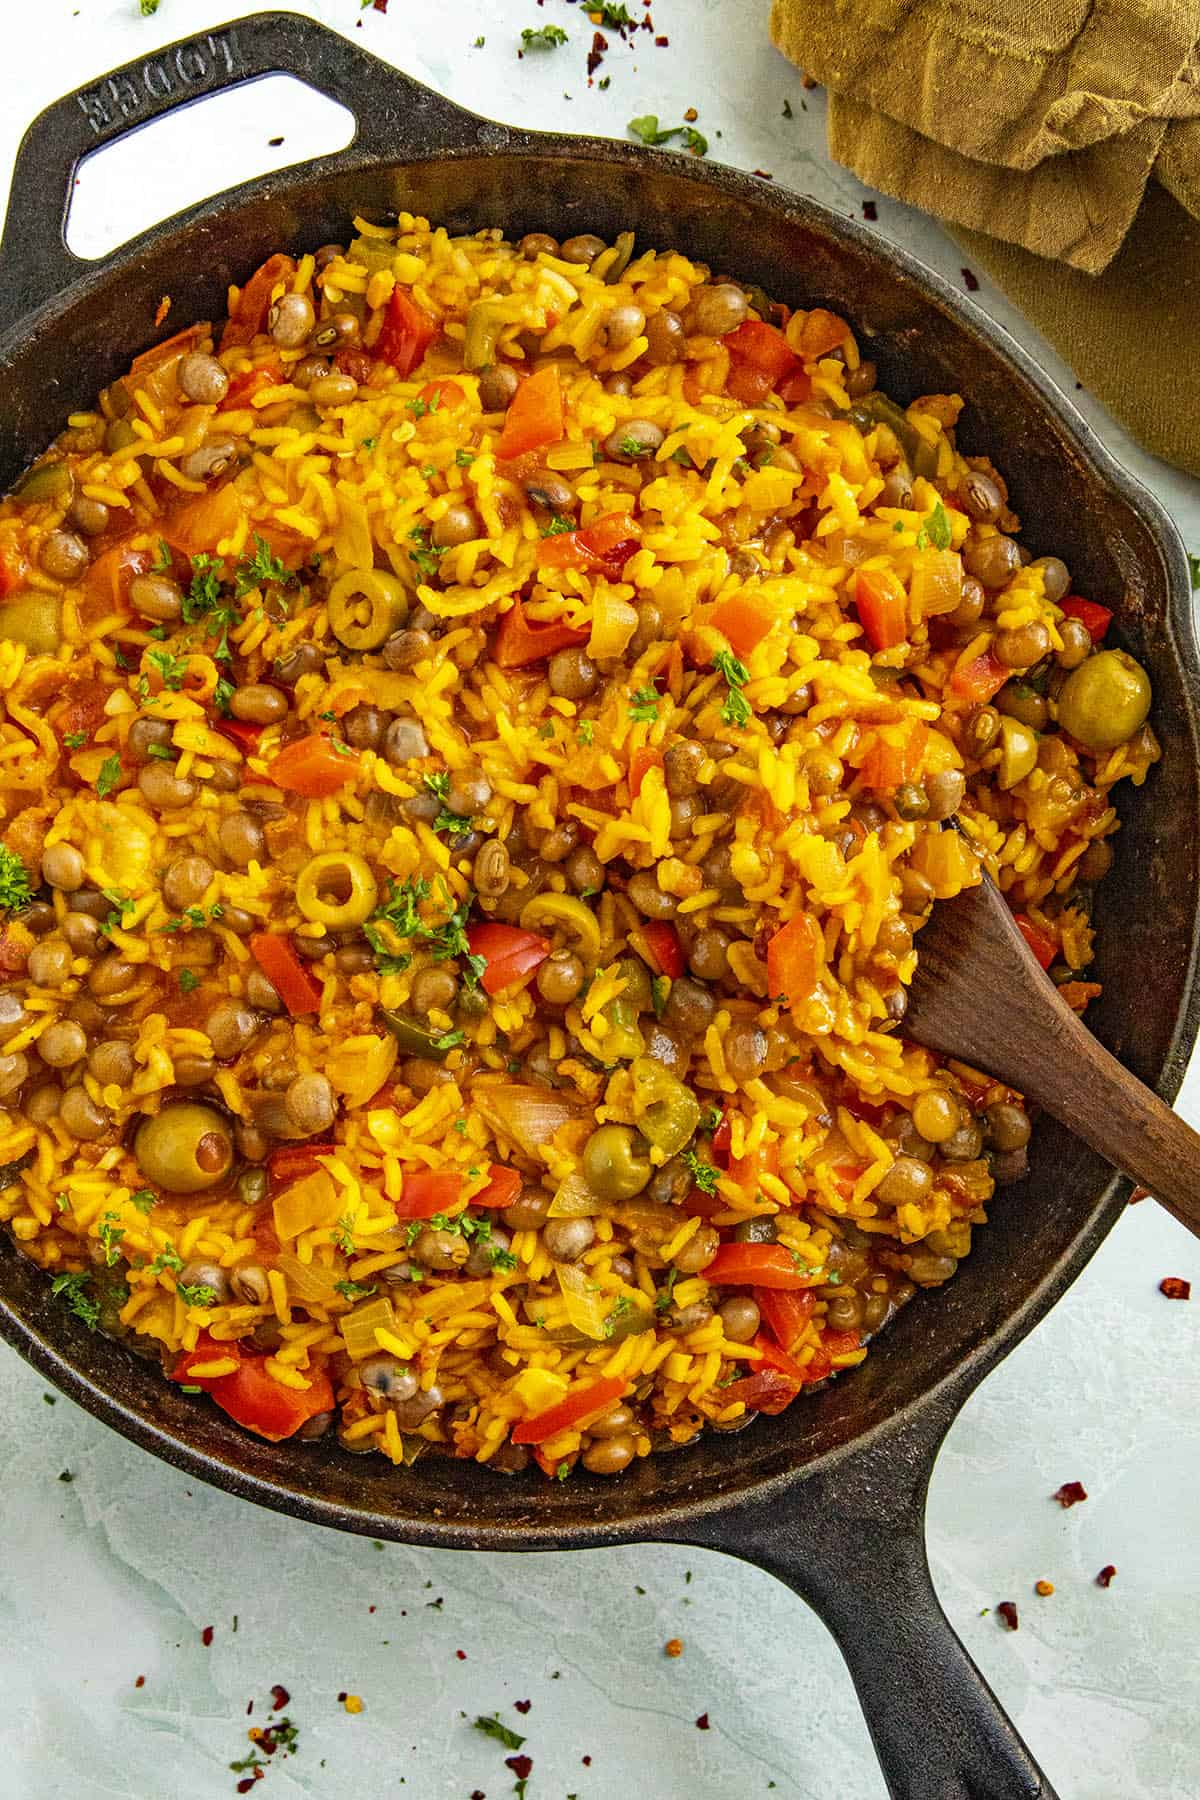 Scooping Arroz con Gandules from a pan